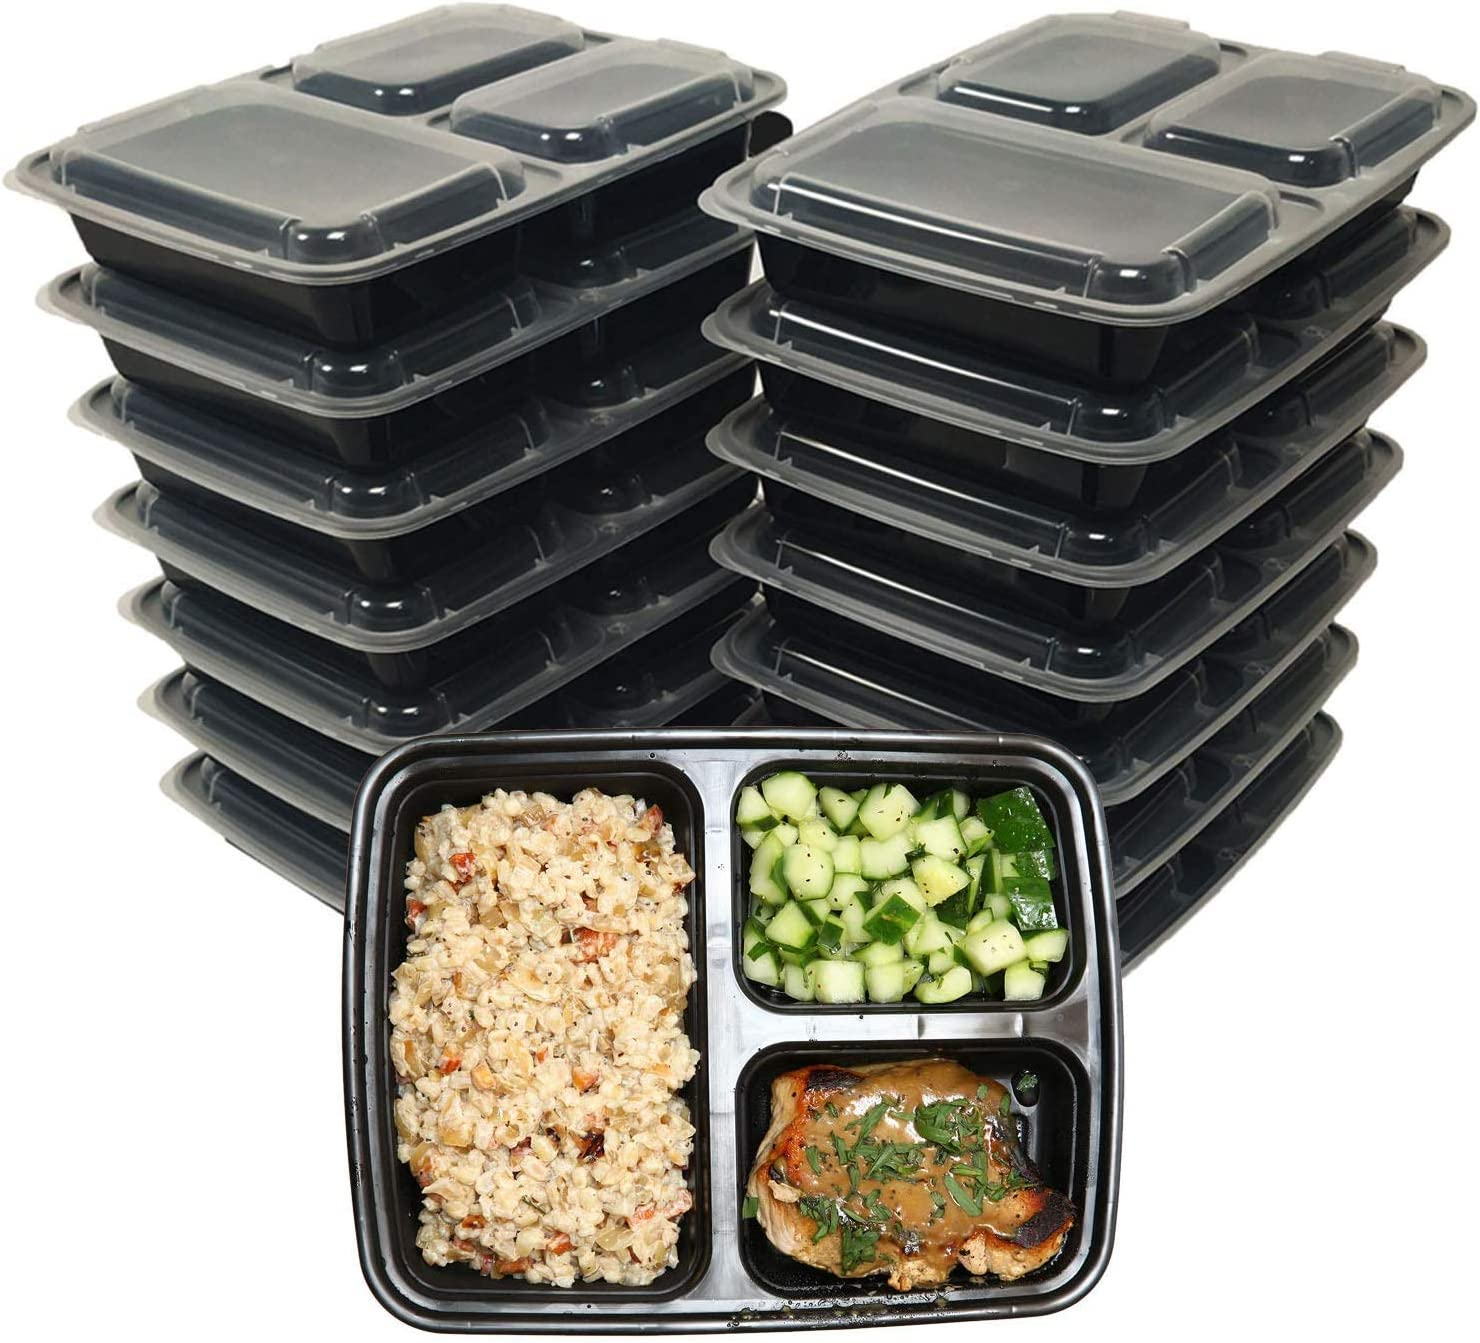 Tiger Chef Meal Prep Containers, Bento Box Food Storage with Lids - 3 compartment Lunch Box - Take Out Food Container - BPA Free Reusable - 12 Pack